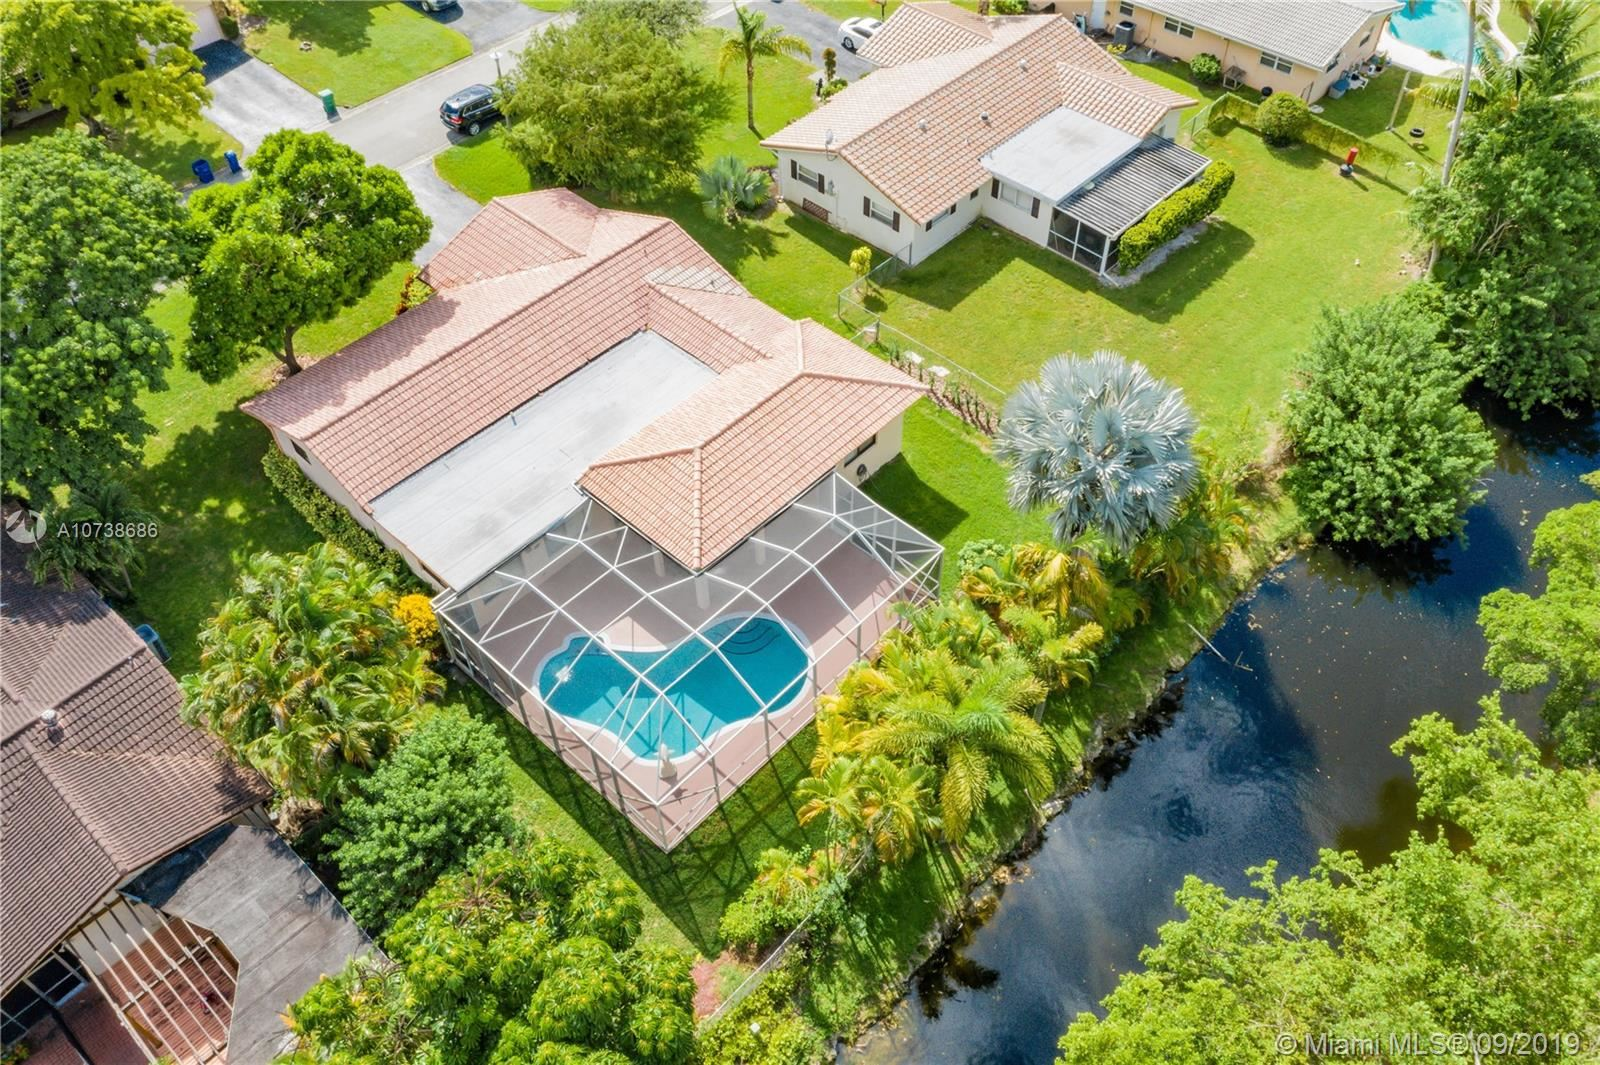 4160 NW 103rd Dr, Coral Springs, FL 33065 - MLS#: A10738686